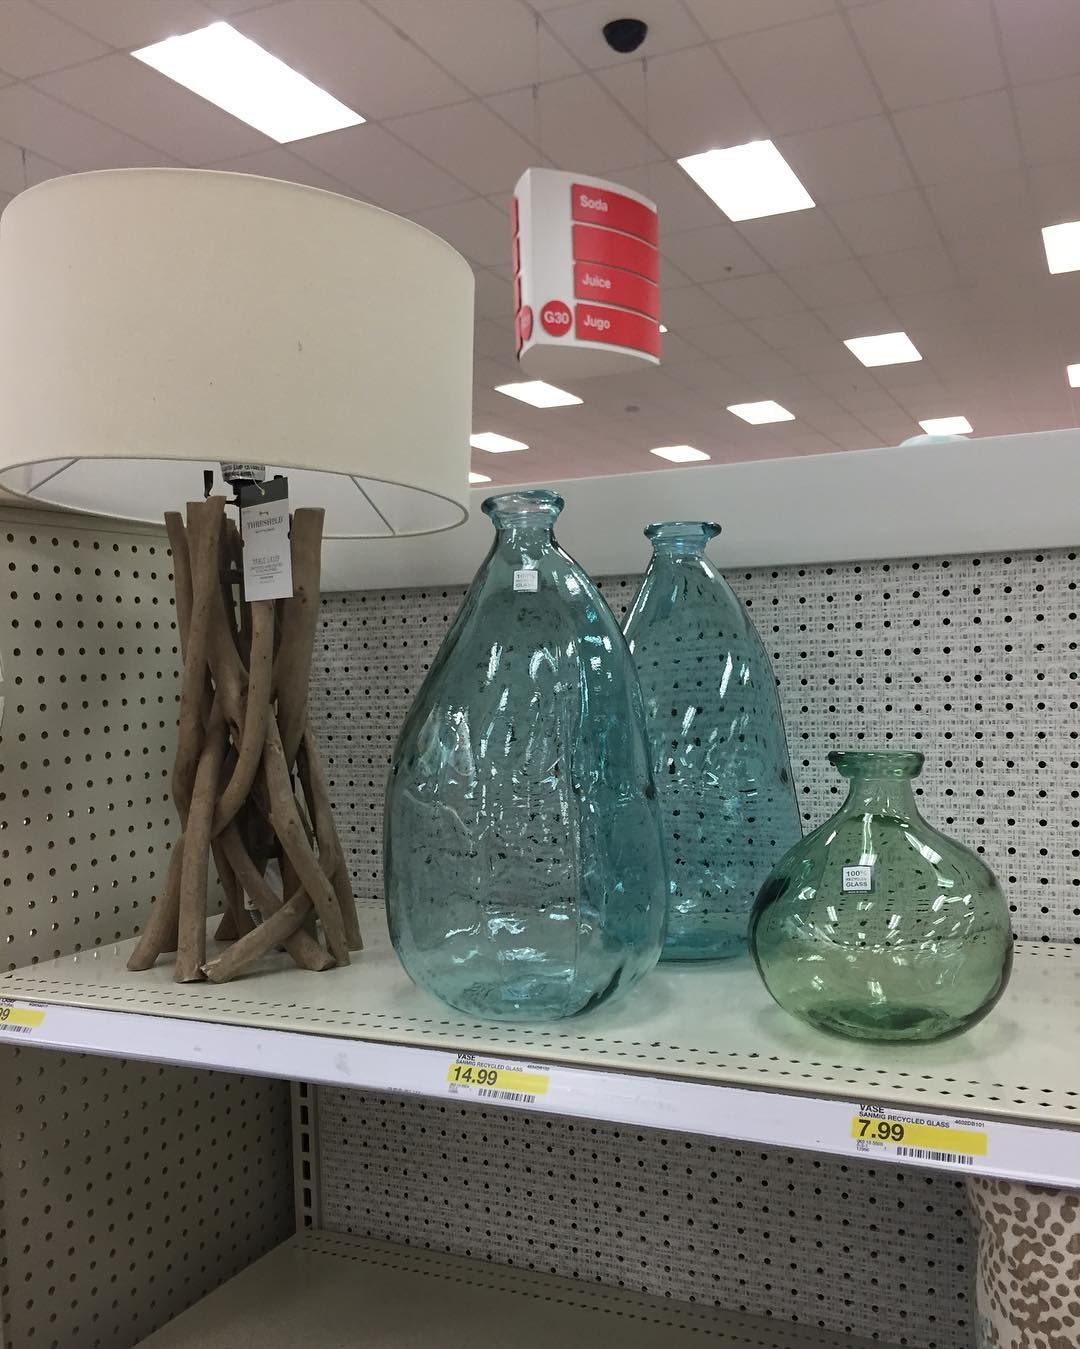 New Home Decor!! #threshold #homedecor #decor #life #bedroomdecor #vase #lamp #targetstyle #targetstyle #homeaccents #homegoods #homedesign #decorideas #decoration #targetdoesitagain by targetclearancequeen http://discoverdmci.com